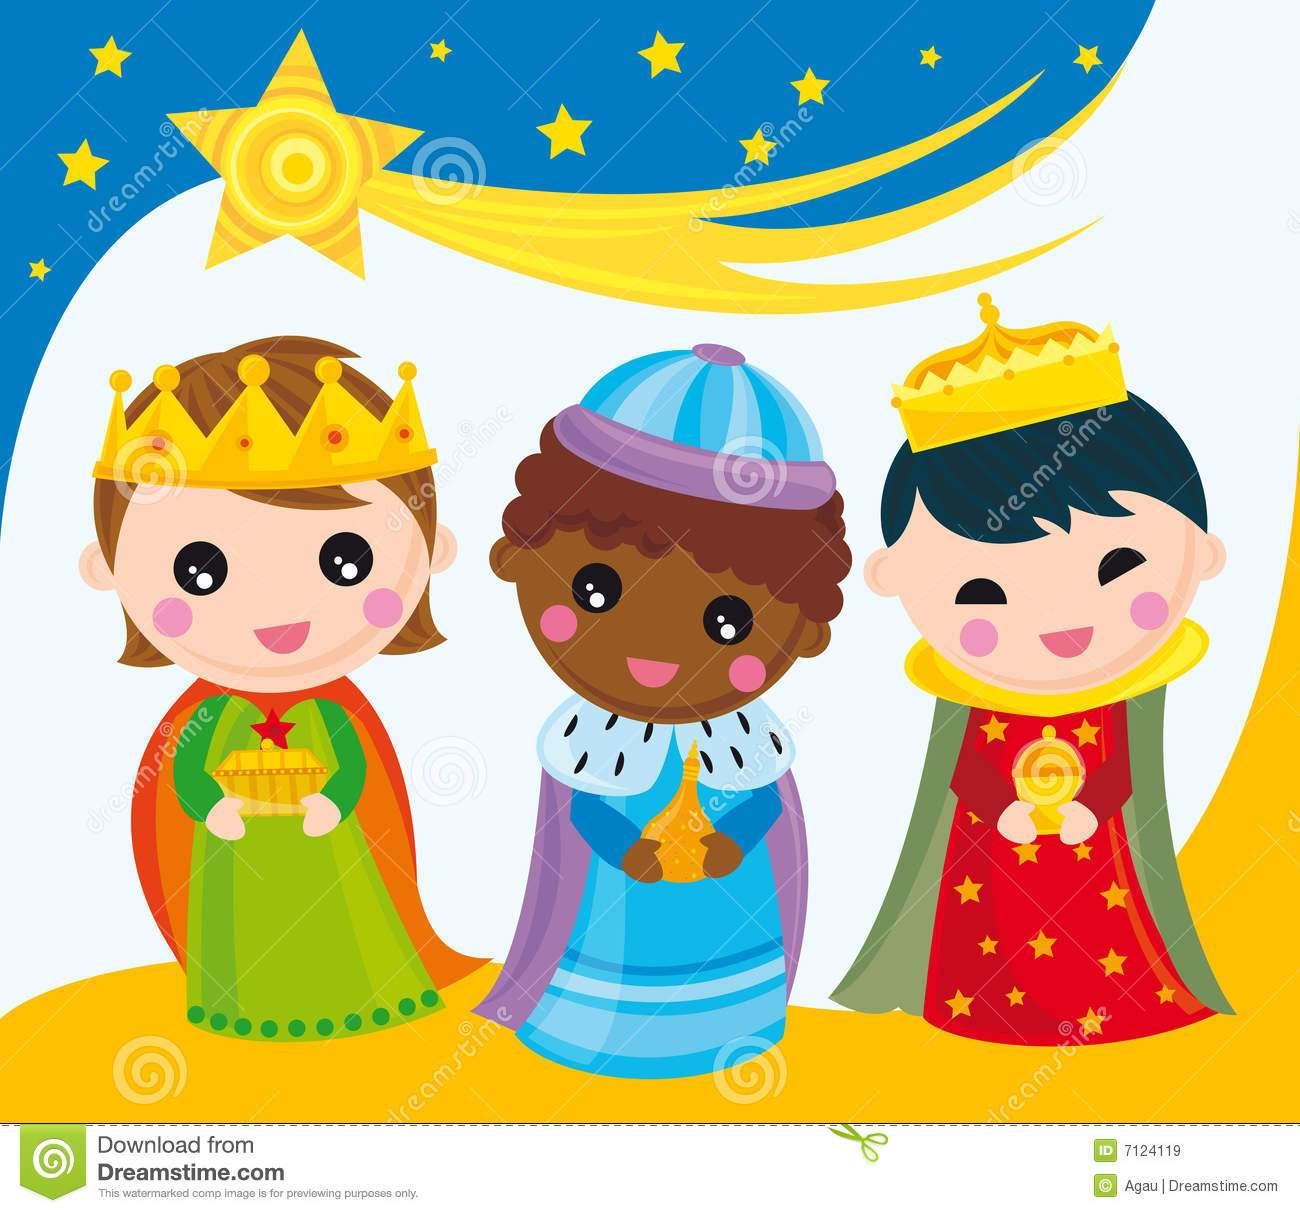 Three kings clipart 2 » Clipart Portal.